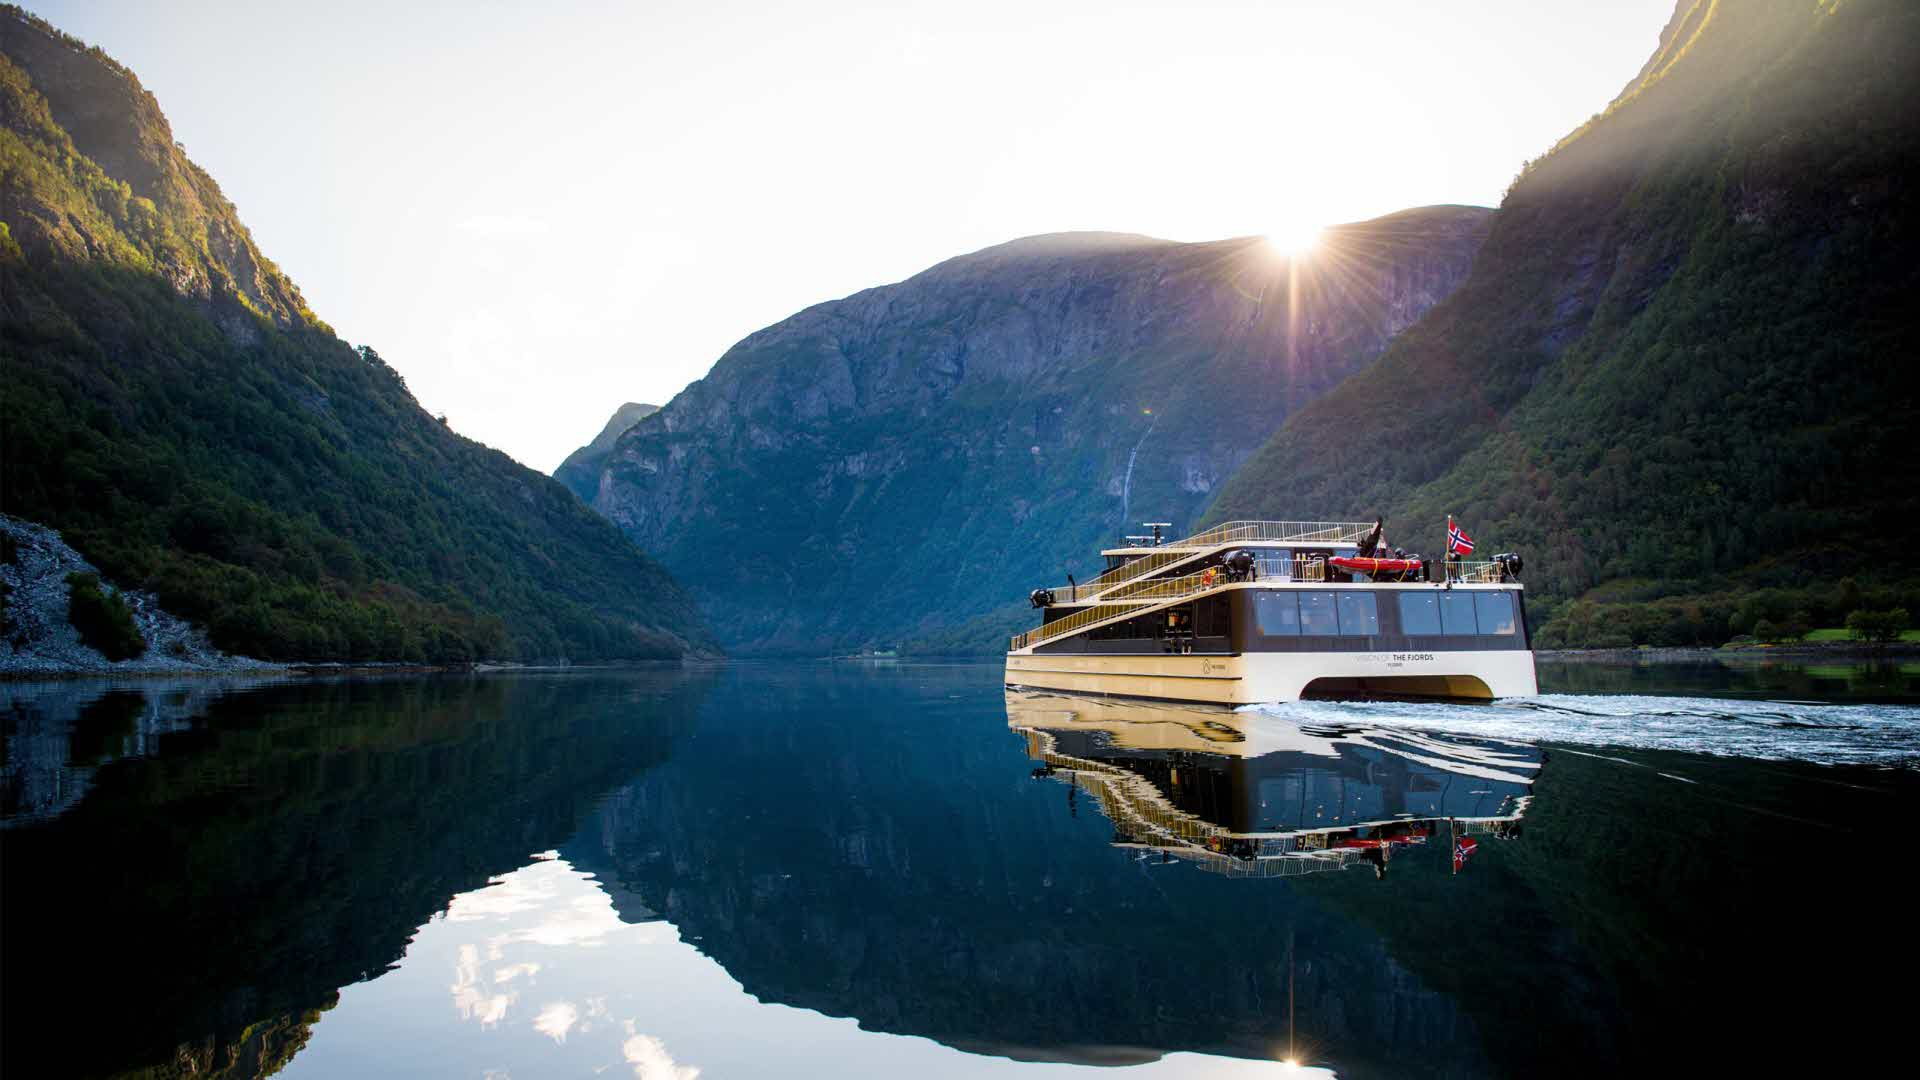 An electric boat sails across the Aurlandsfjord at dusk